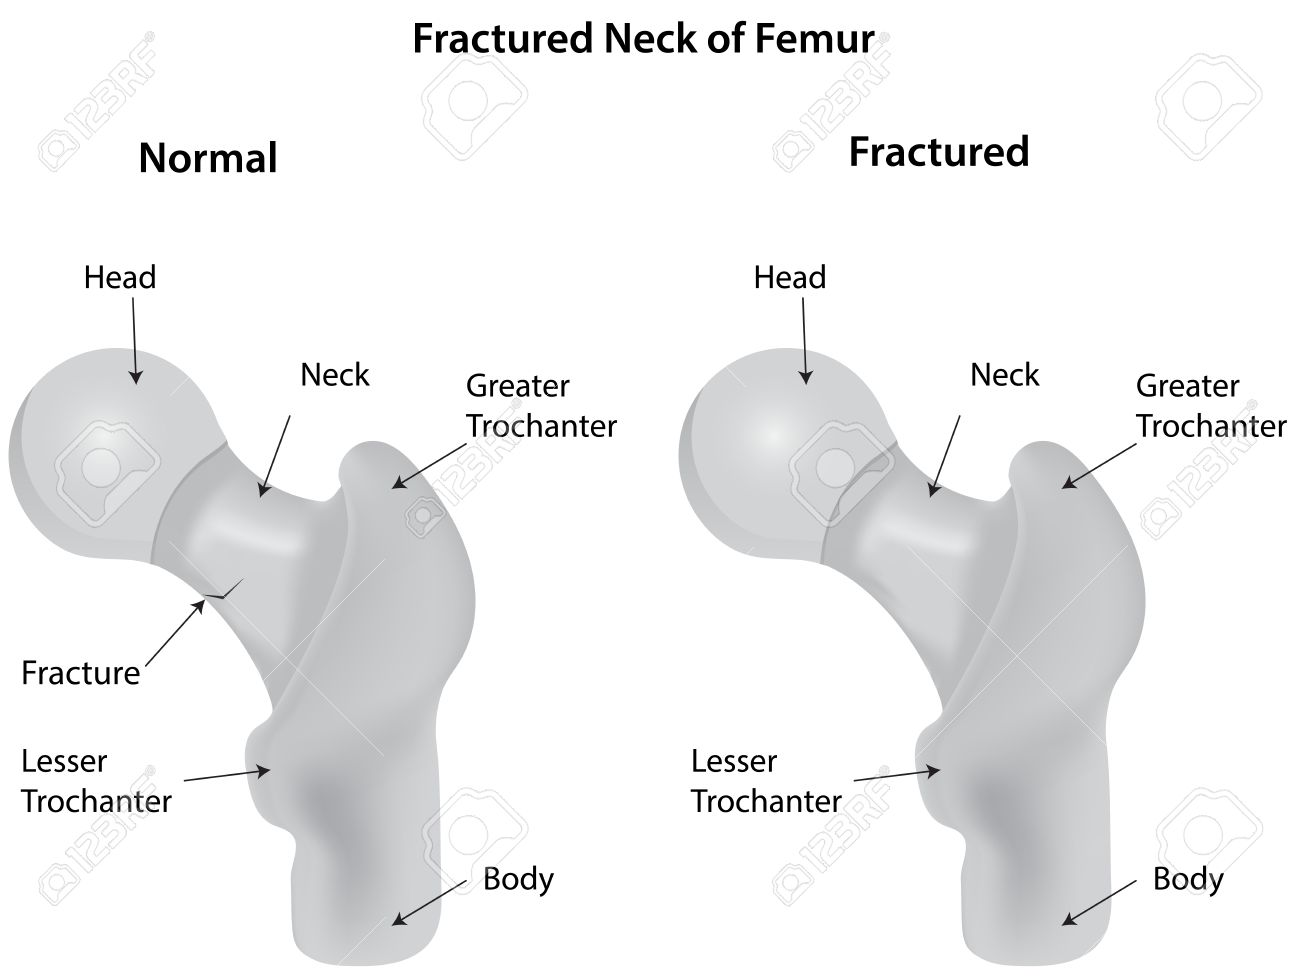 Fractured neck of femur diagram royalty free cliparts vectors and fractured neck of femur diagram stock vector 32265047 ccuart Image collections